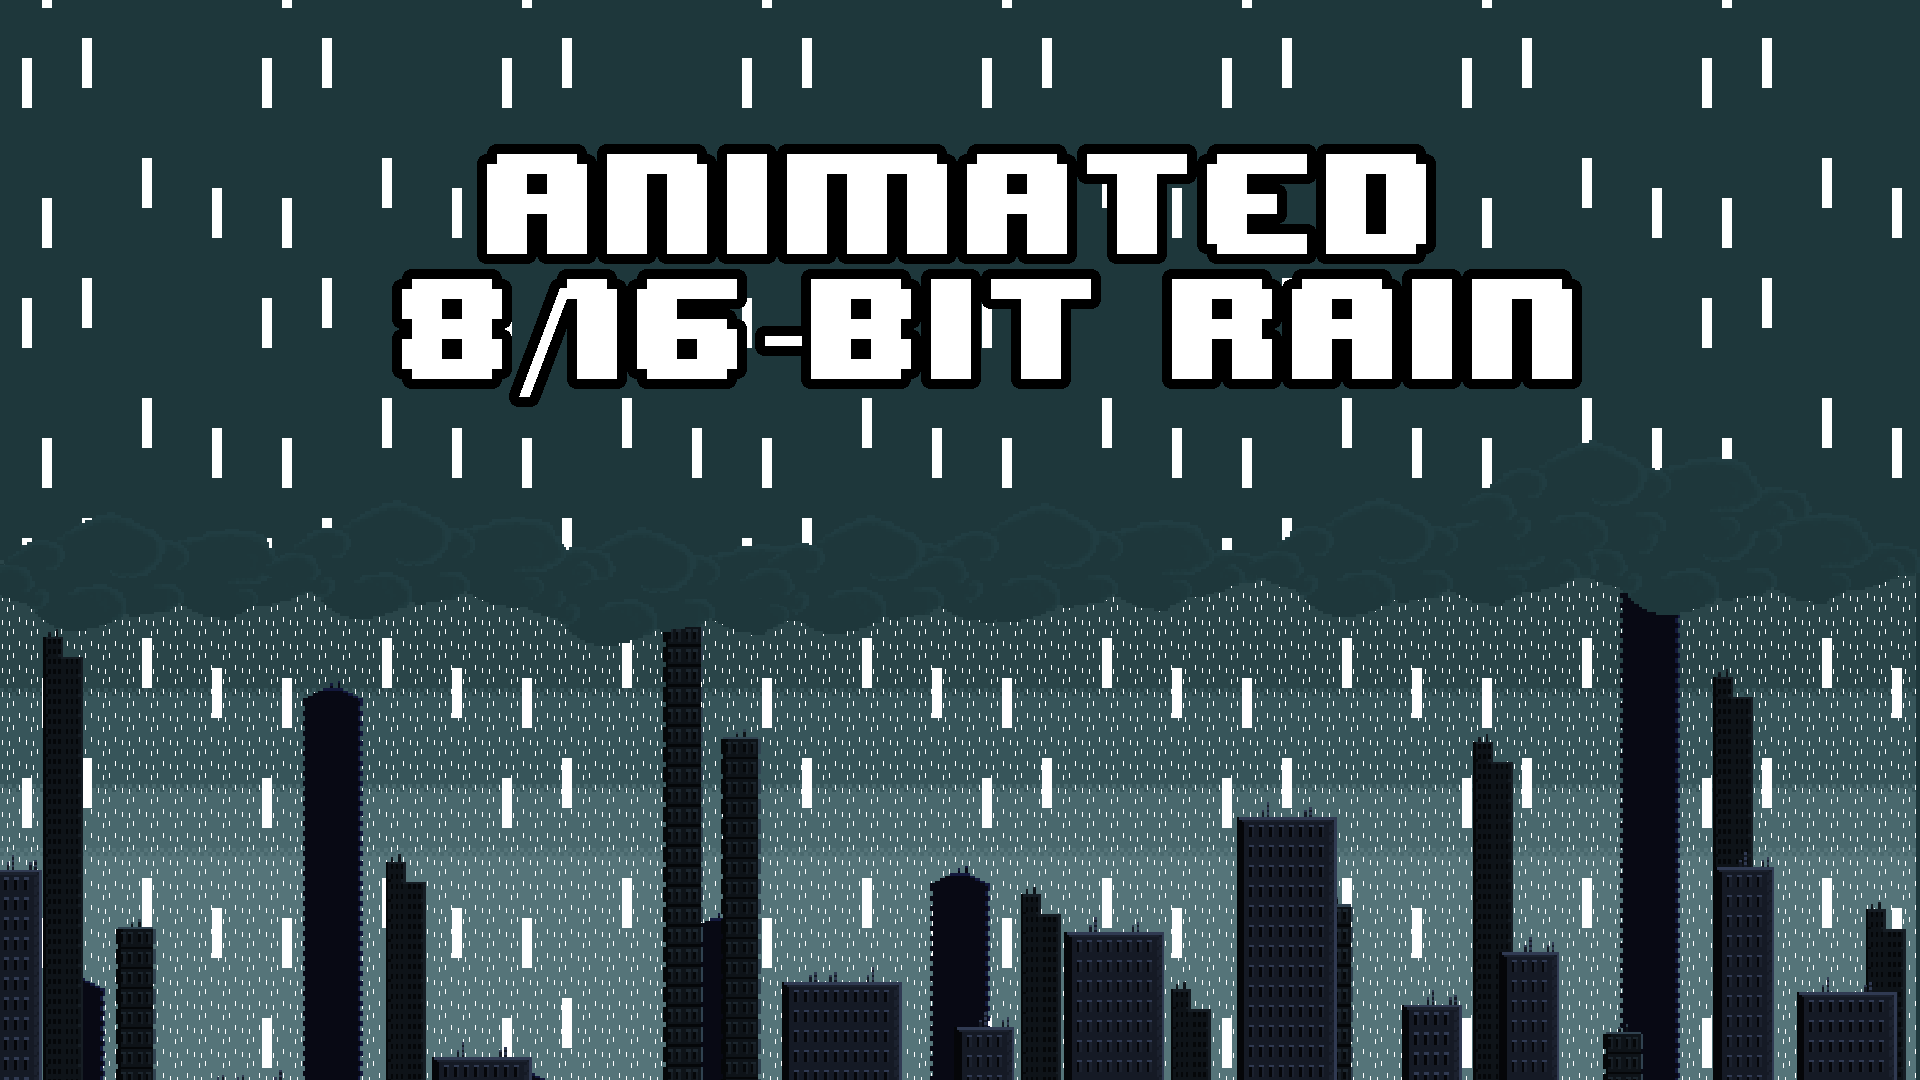 Animated 8/16-Bit Rain